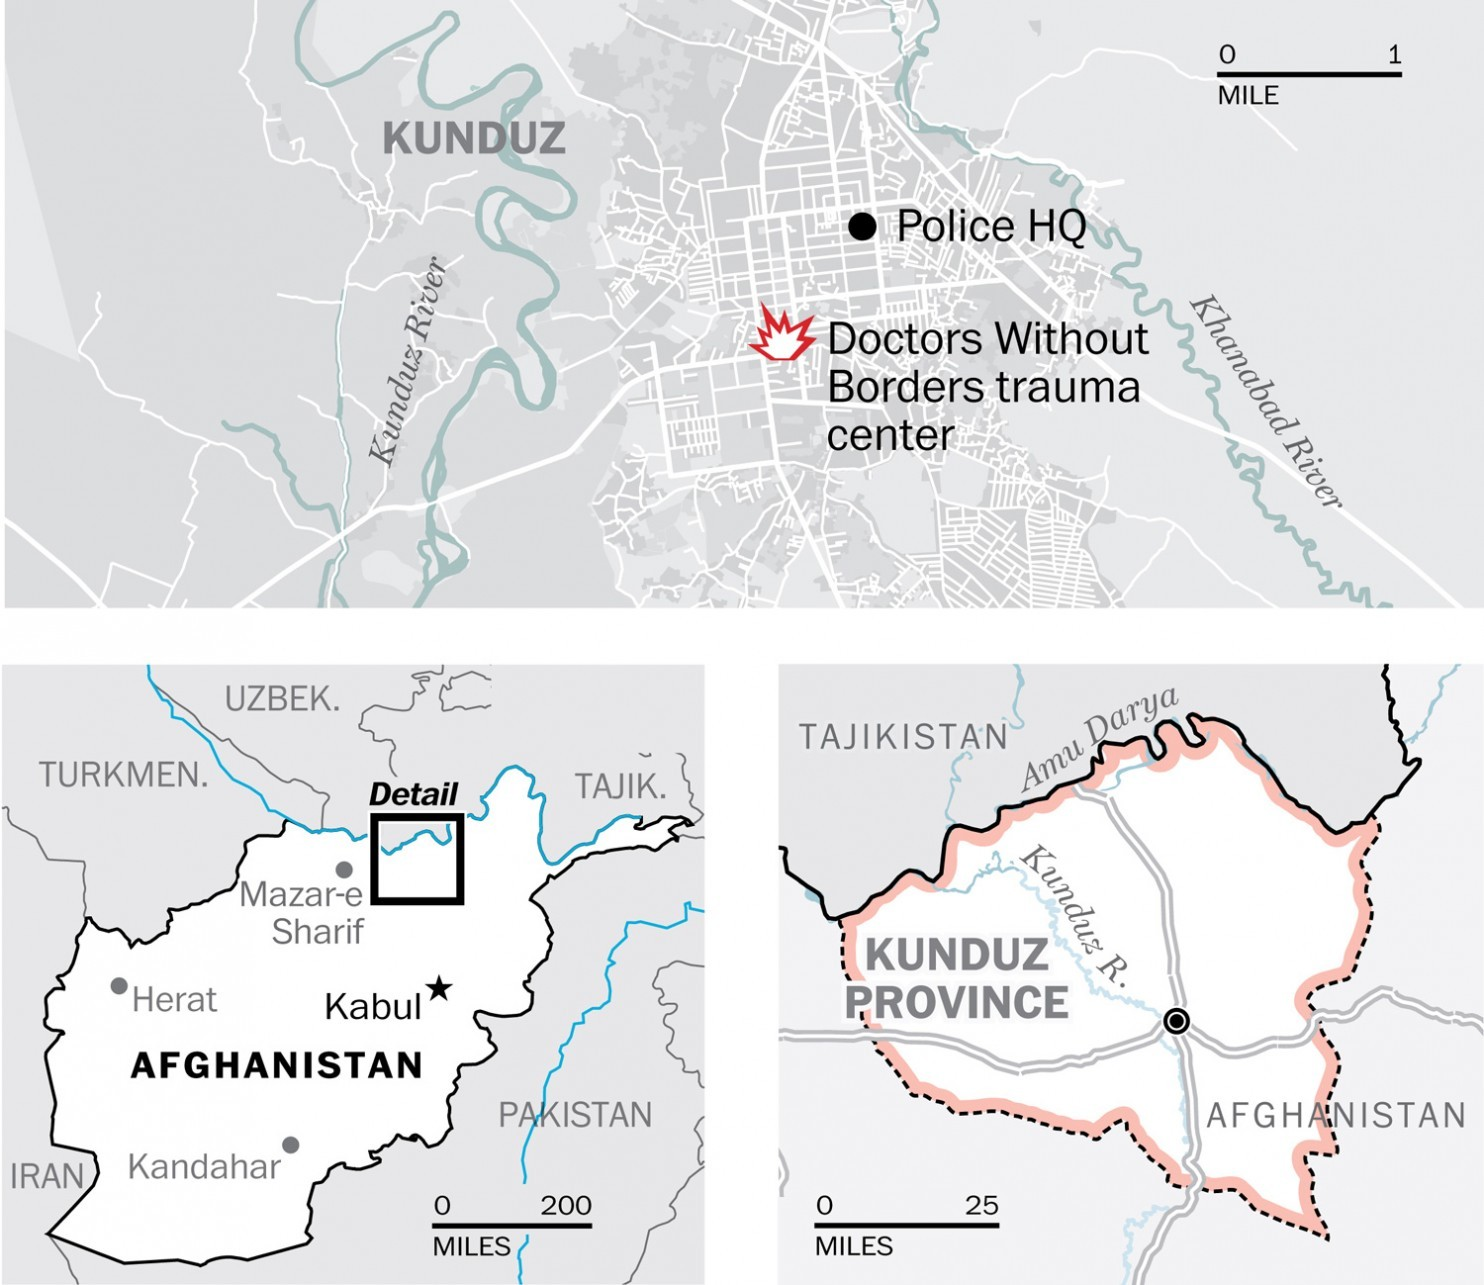 Doctors Without Borders says U.S. airstrike hit hospital in Afghanistan; at least 19 dead